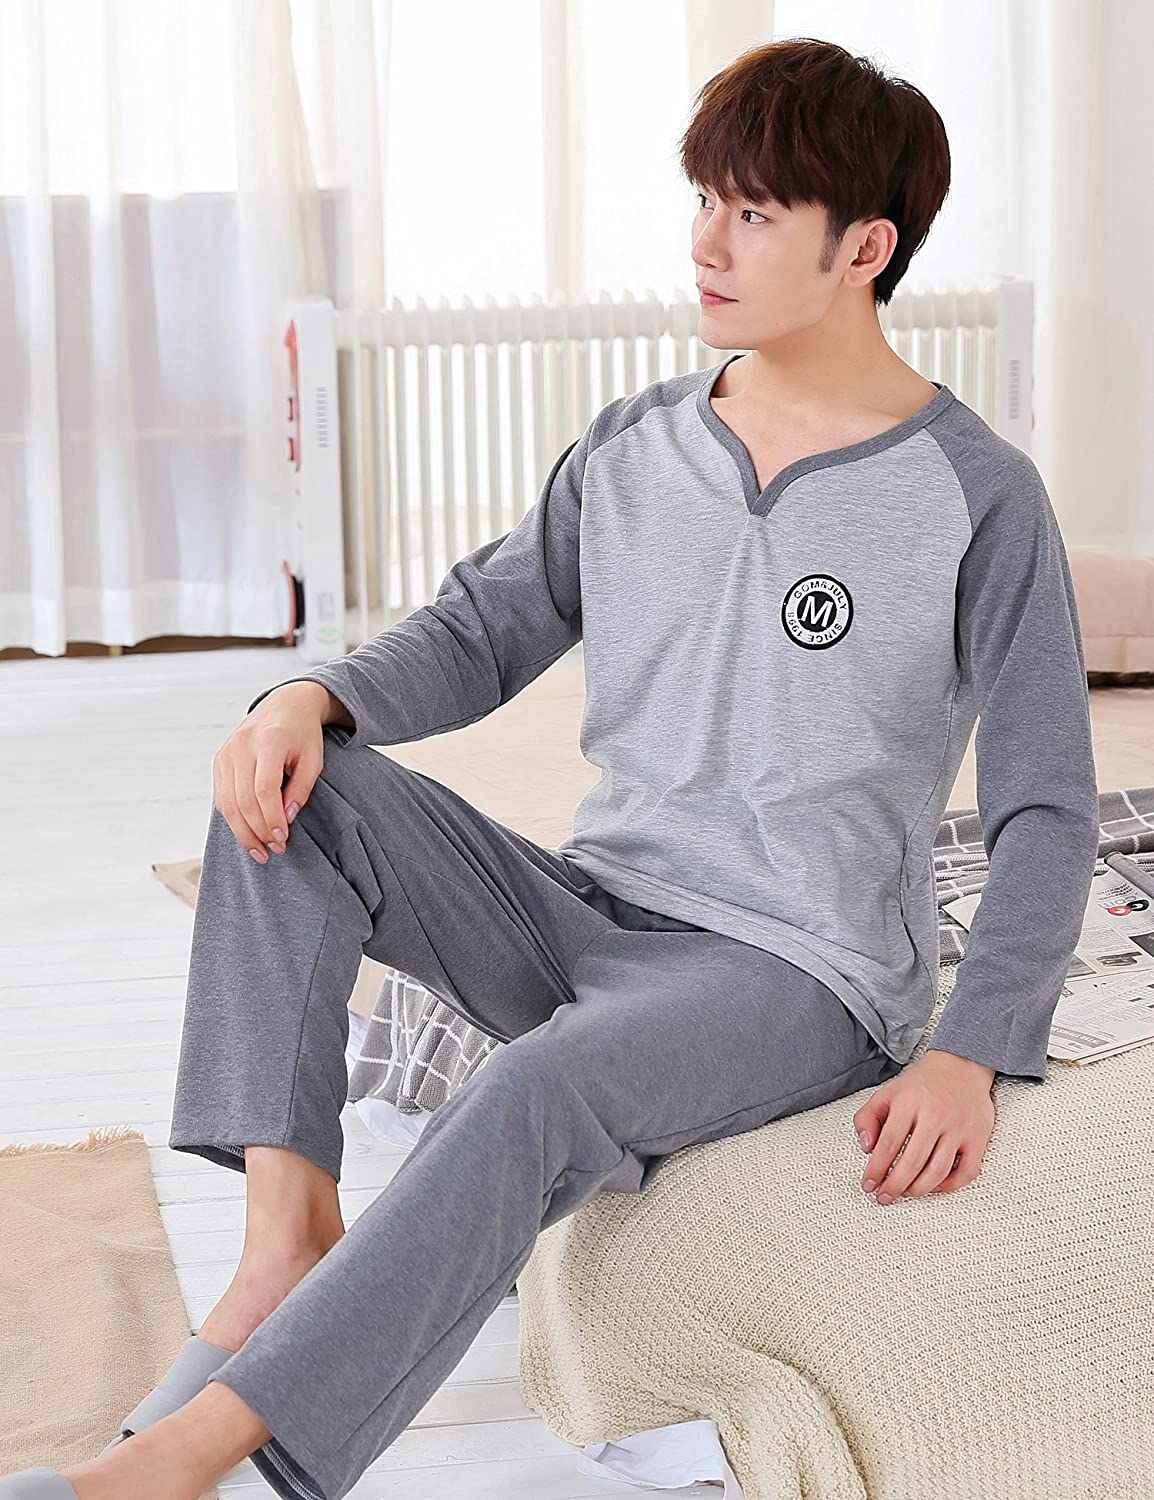 Aibrou Mens Pyjama Sets Mens Cotton Loungewear Set Cotton Sleepwear Set Full Length Gents for All Seasons